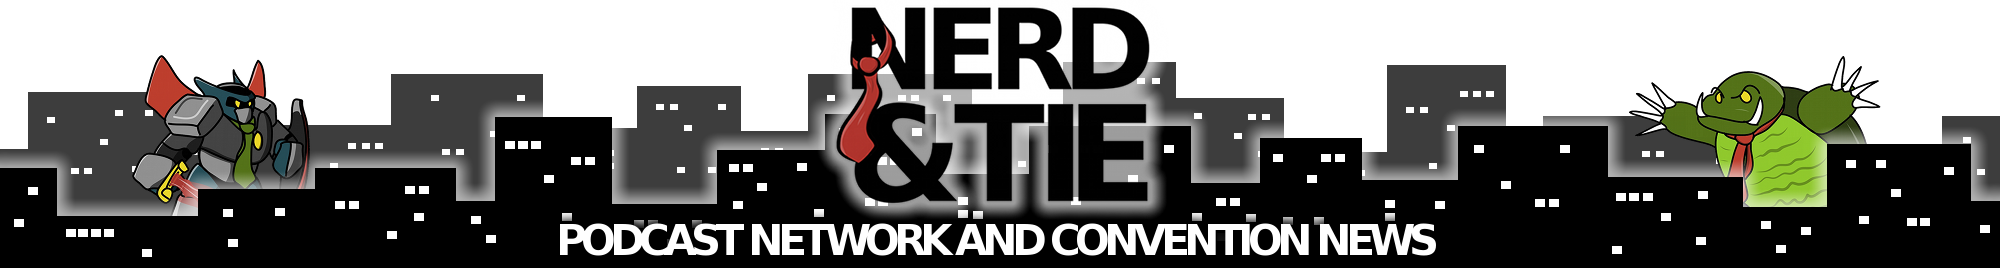 Nerd & Tie Podcast Network